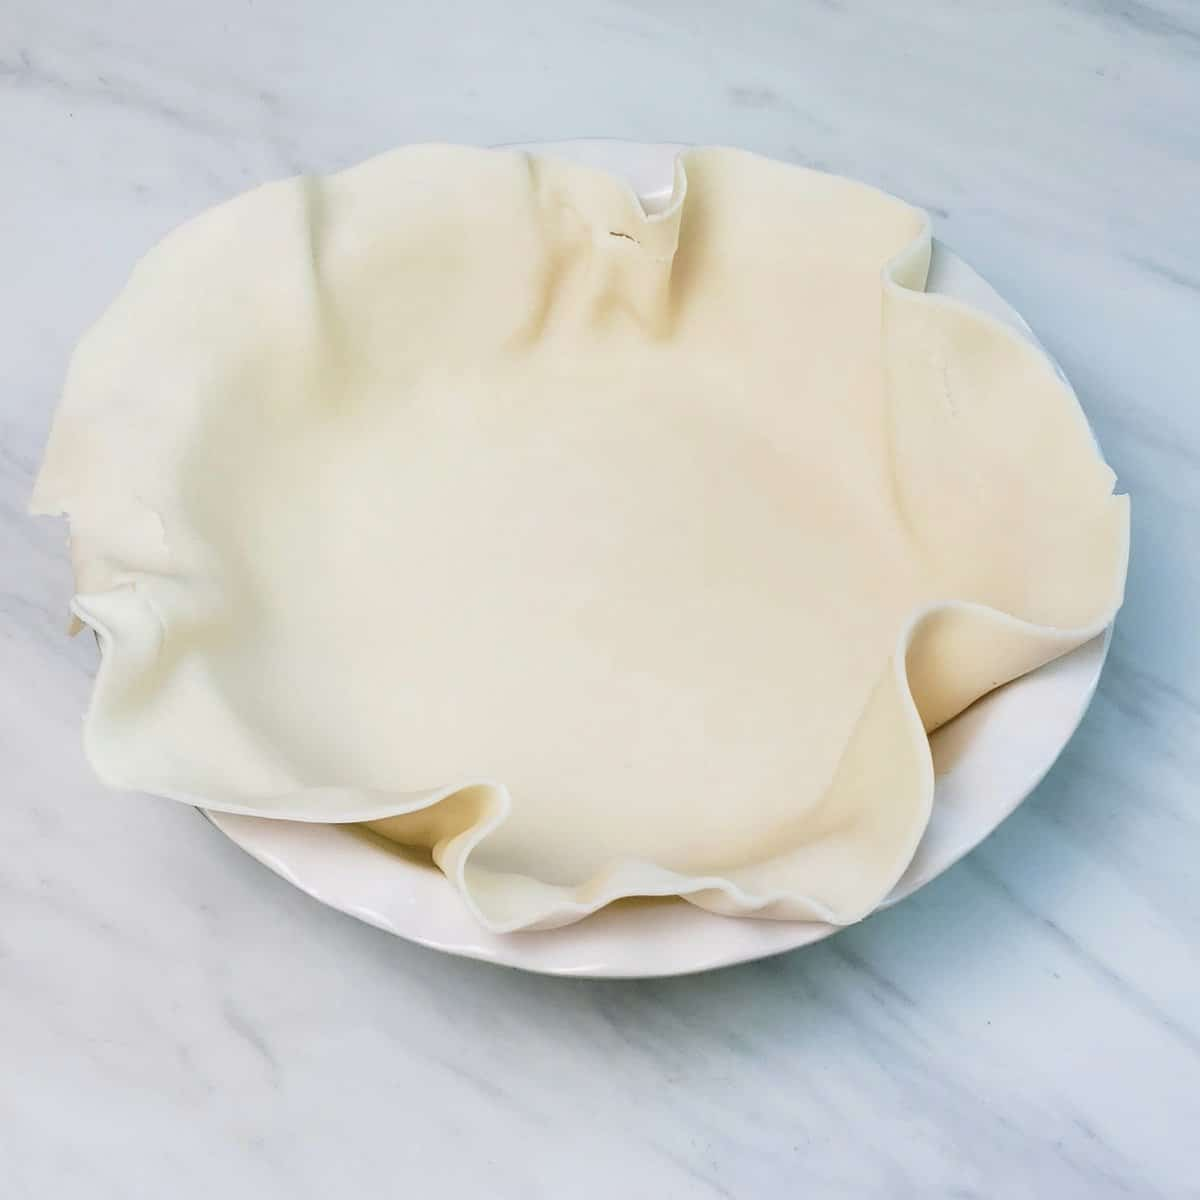 Pillsbury pie crust unrolled and laid in a white pie dish on marble surface